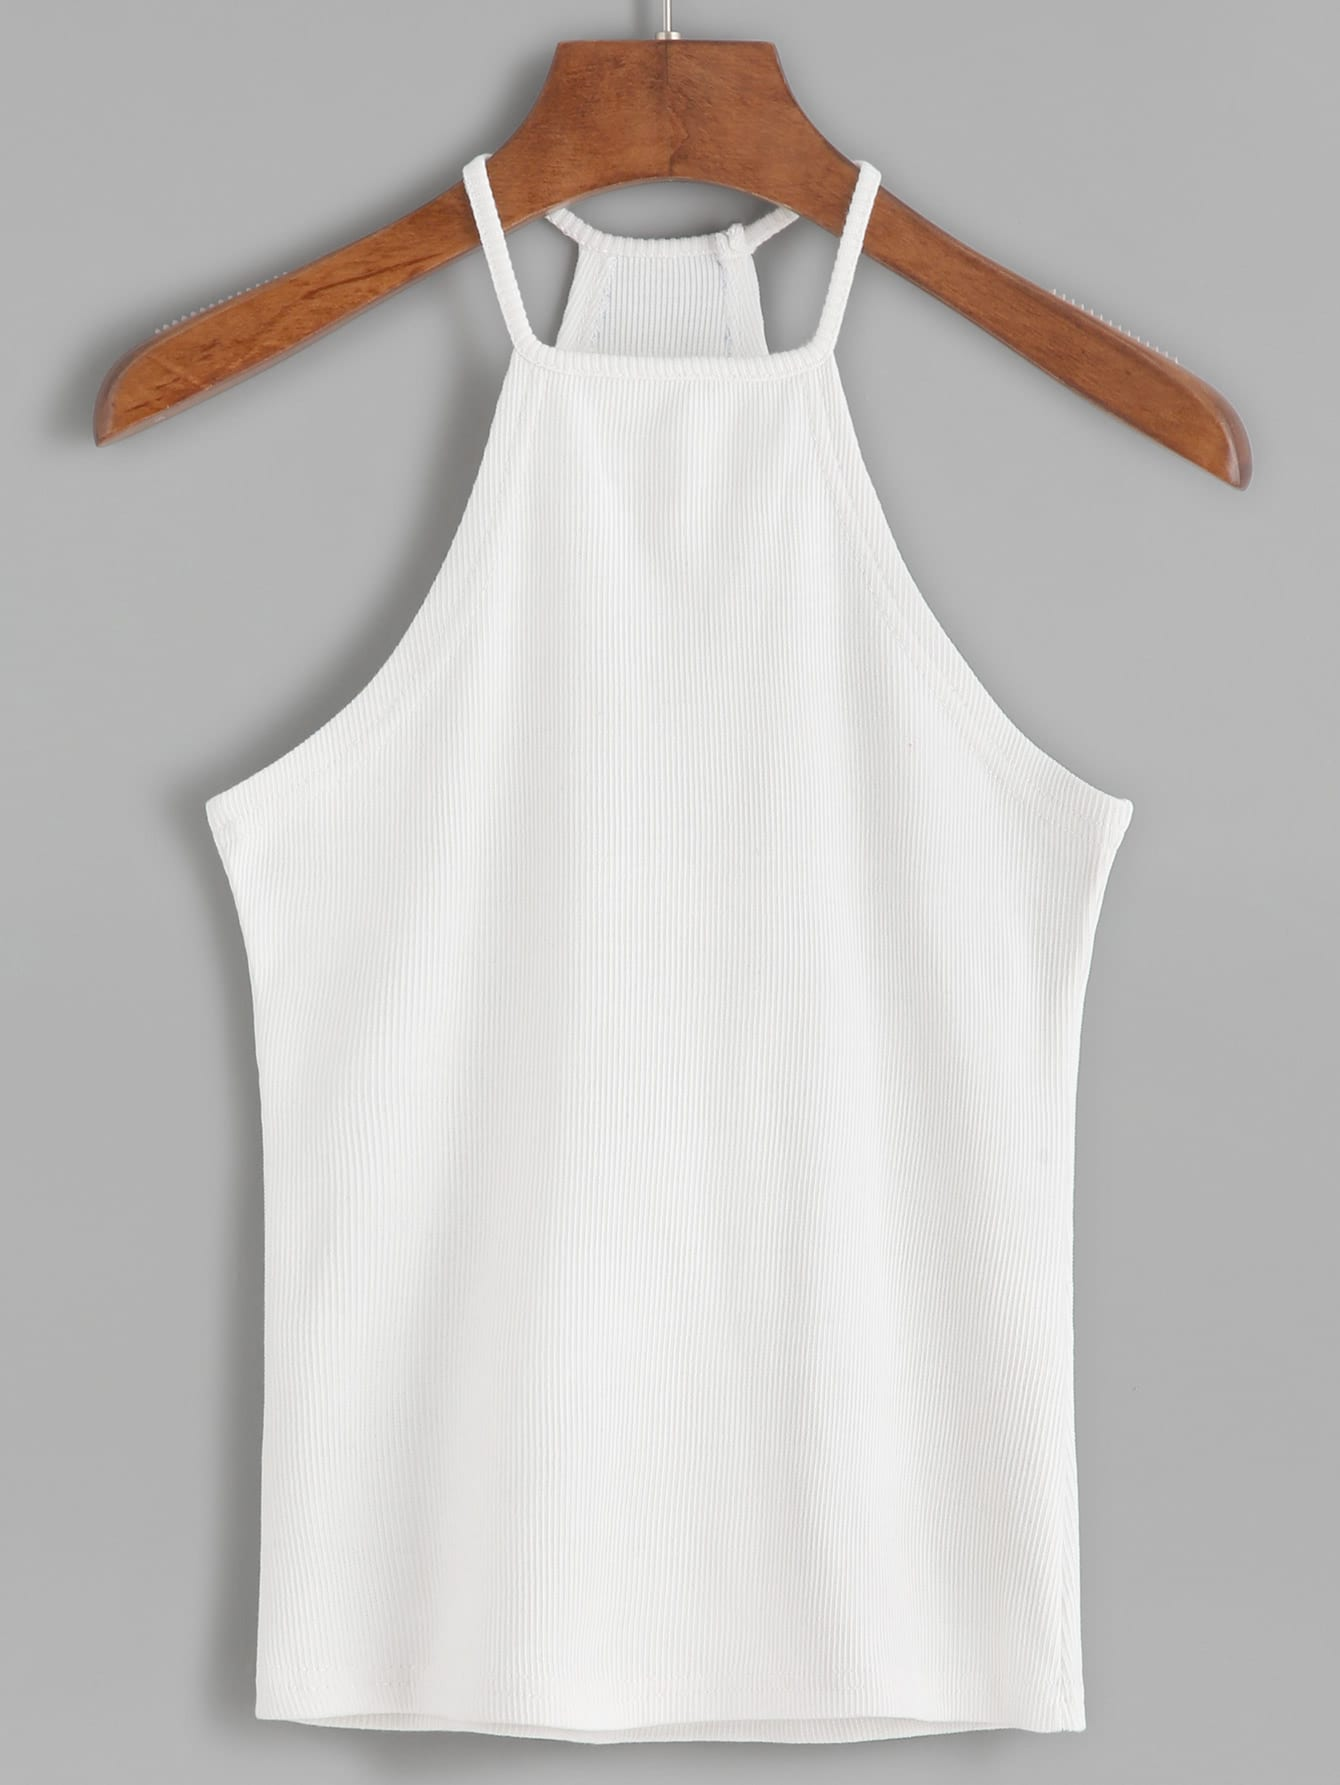 White Halter Ribbed Cami Top vest160819001